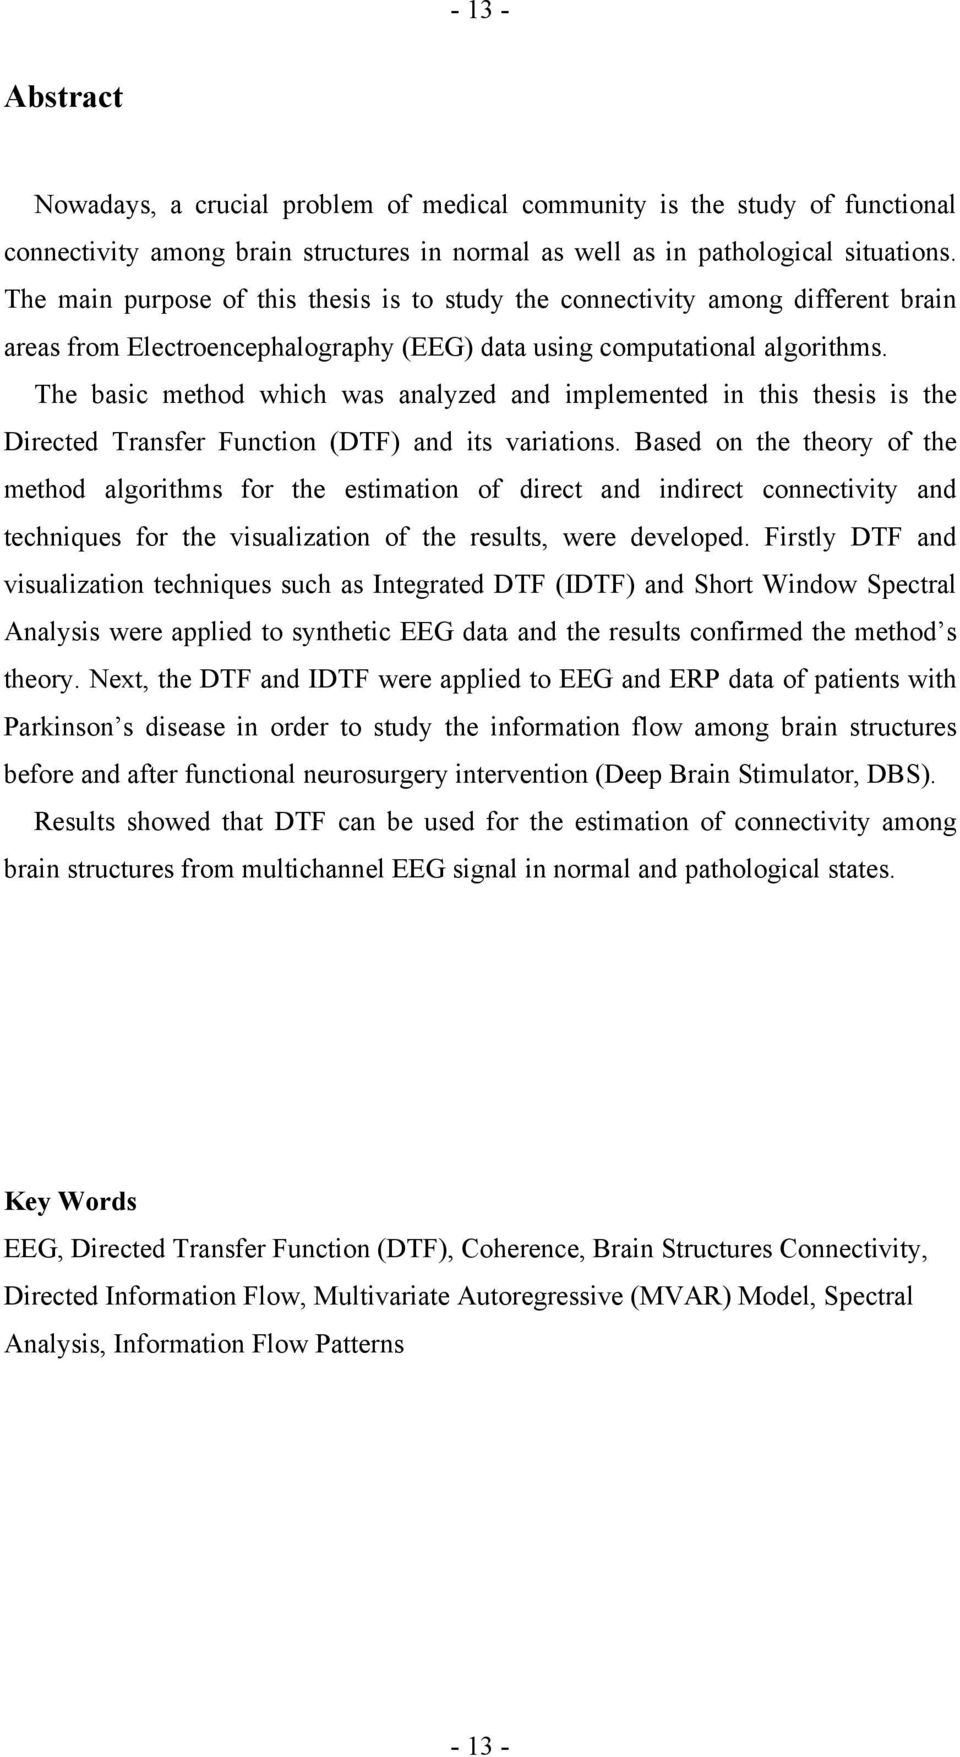 The basic method which was analyzed and implemented in this thesis is the Directed Transfer Function (DTF) and its variations.